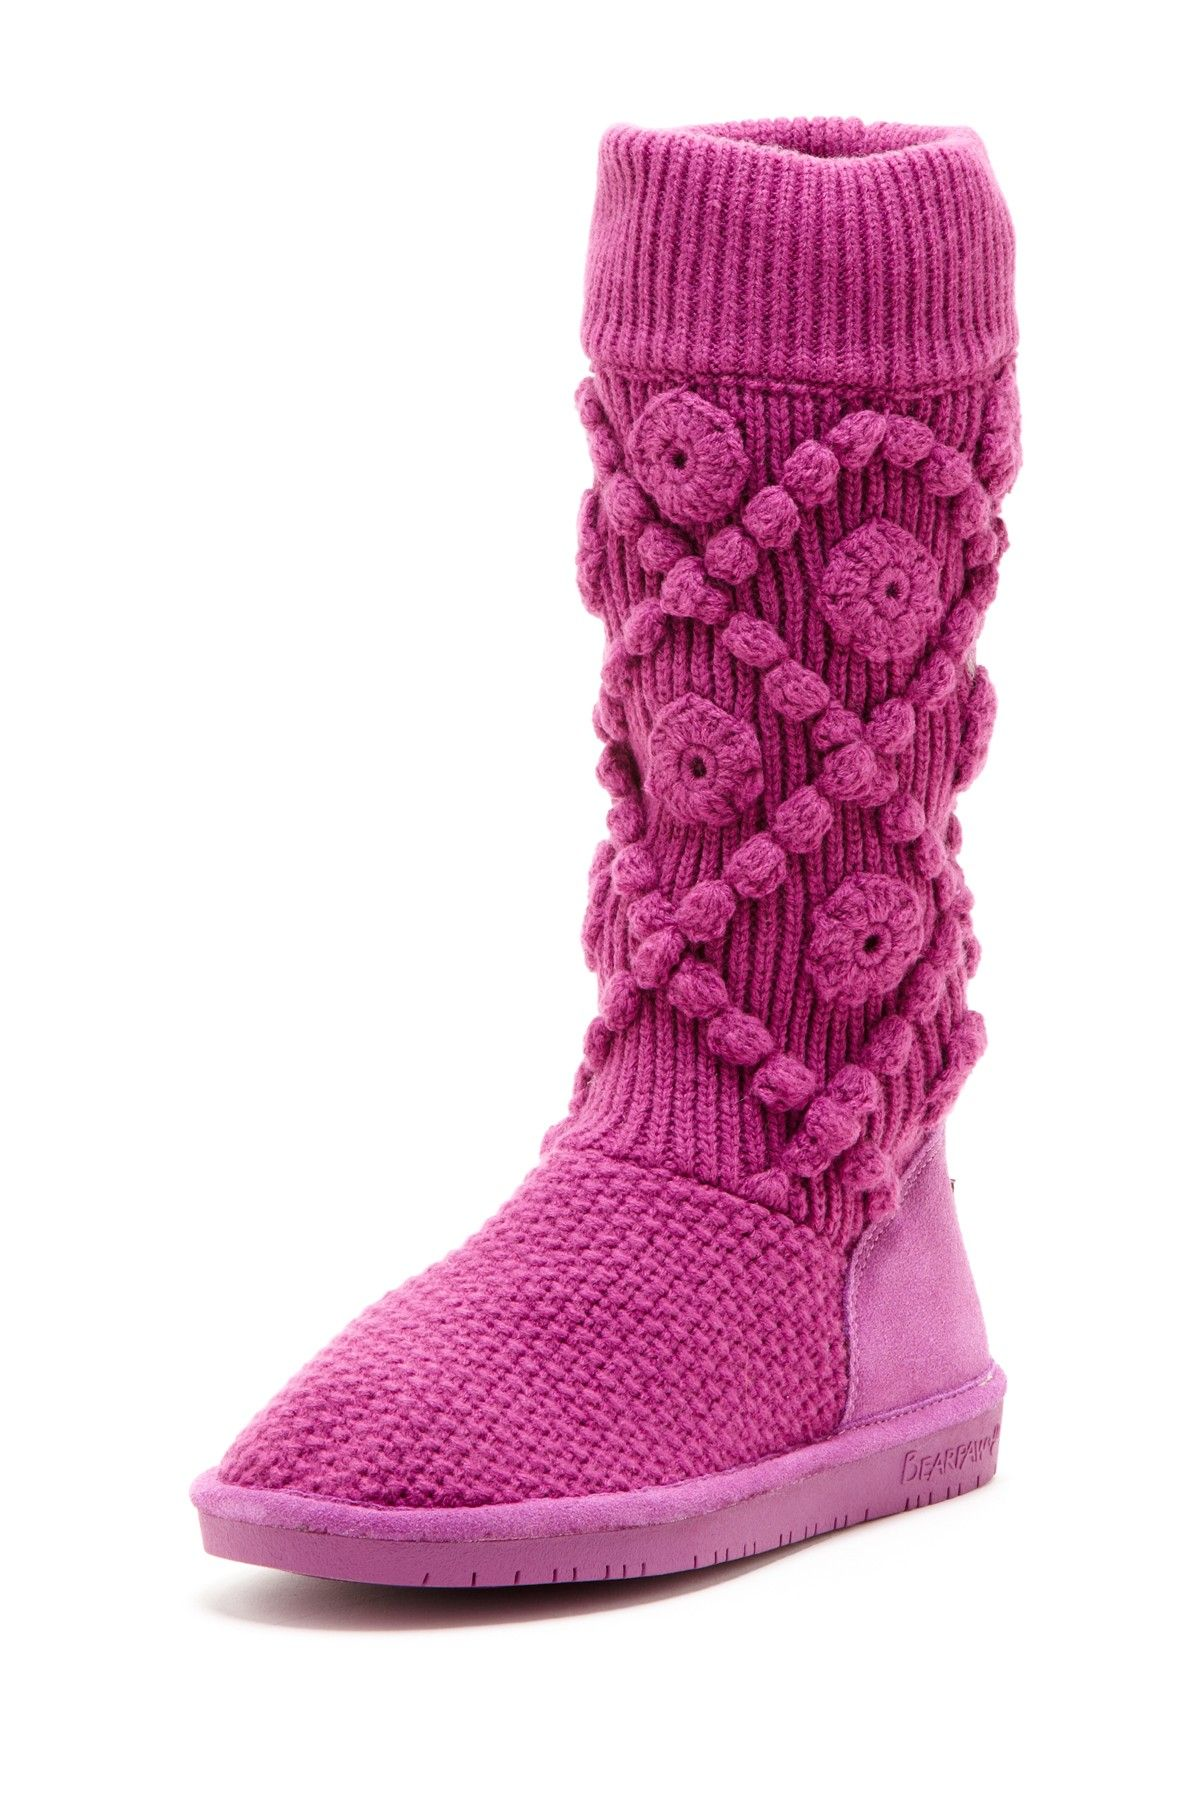 Bearpaw annalisa boot petunia purple footwear boots slippers